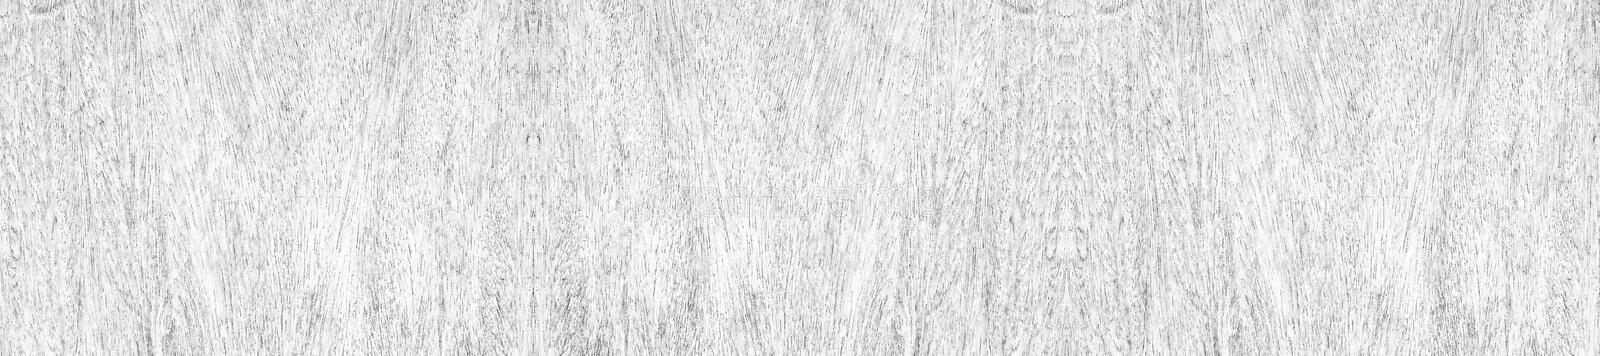 Panorama of old rustic natural grunge black and white wood texture for background royalty free stock photography